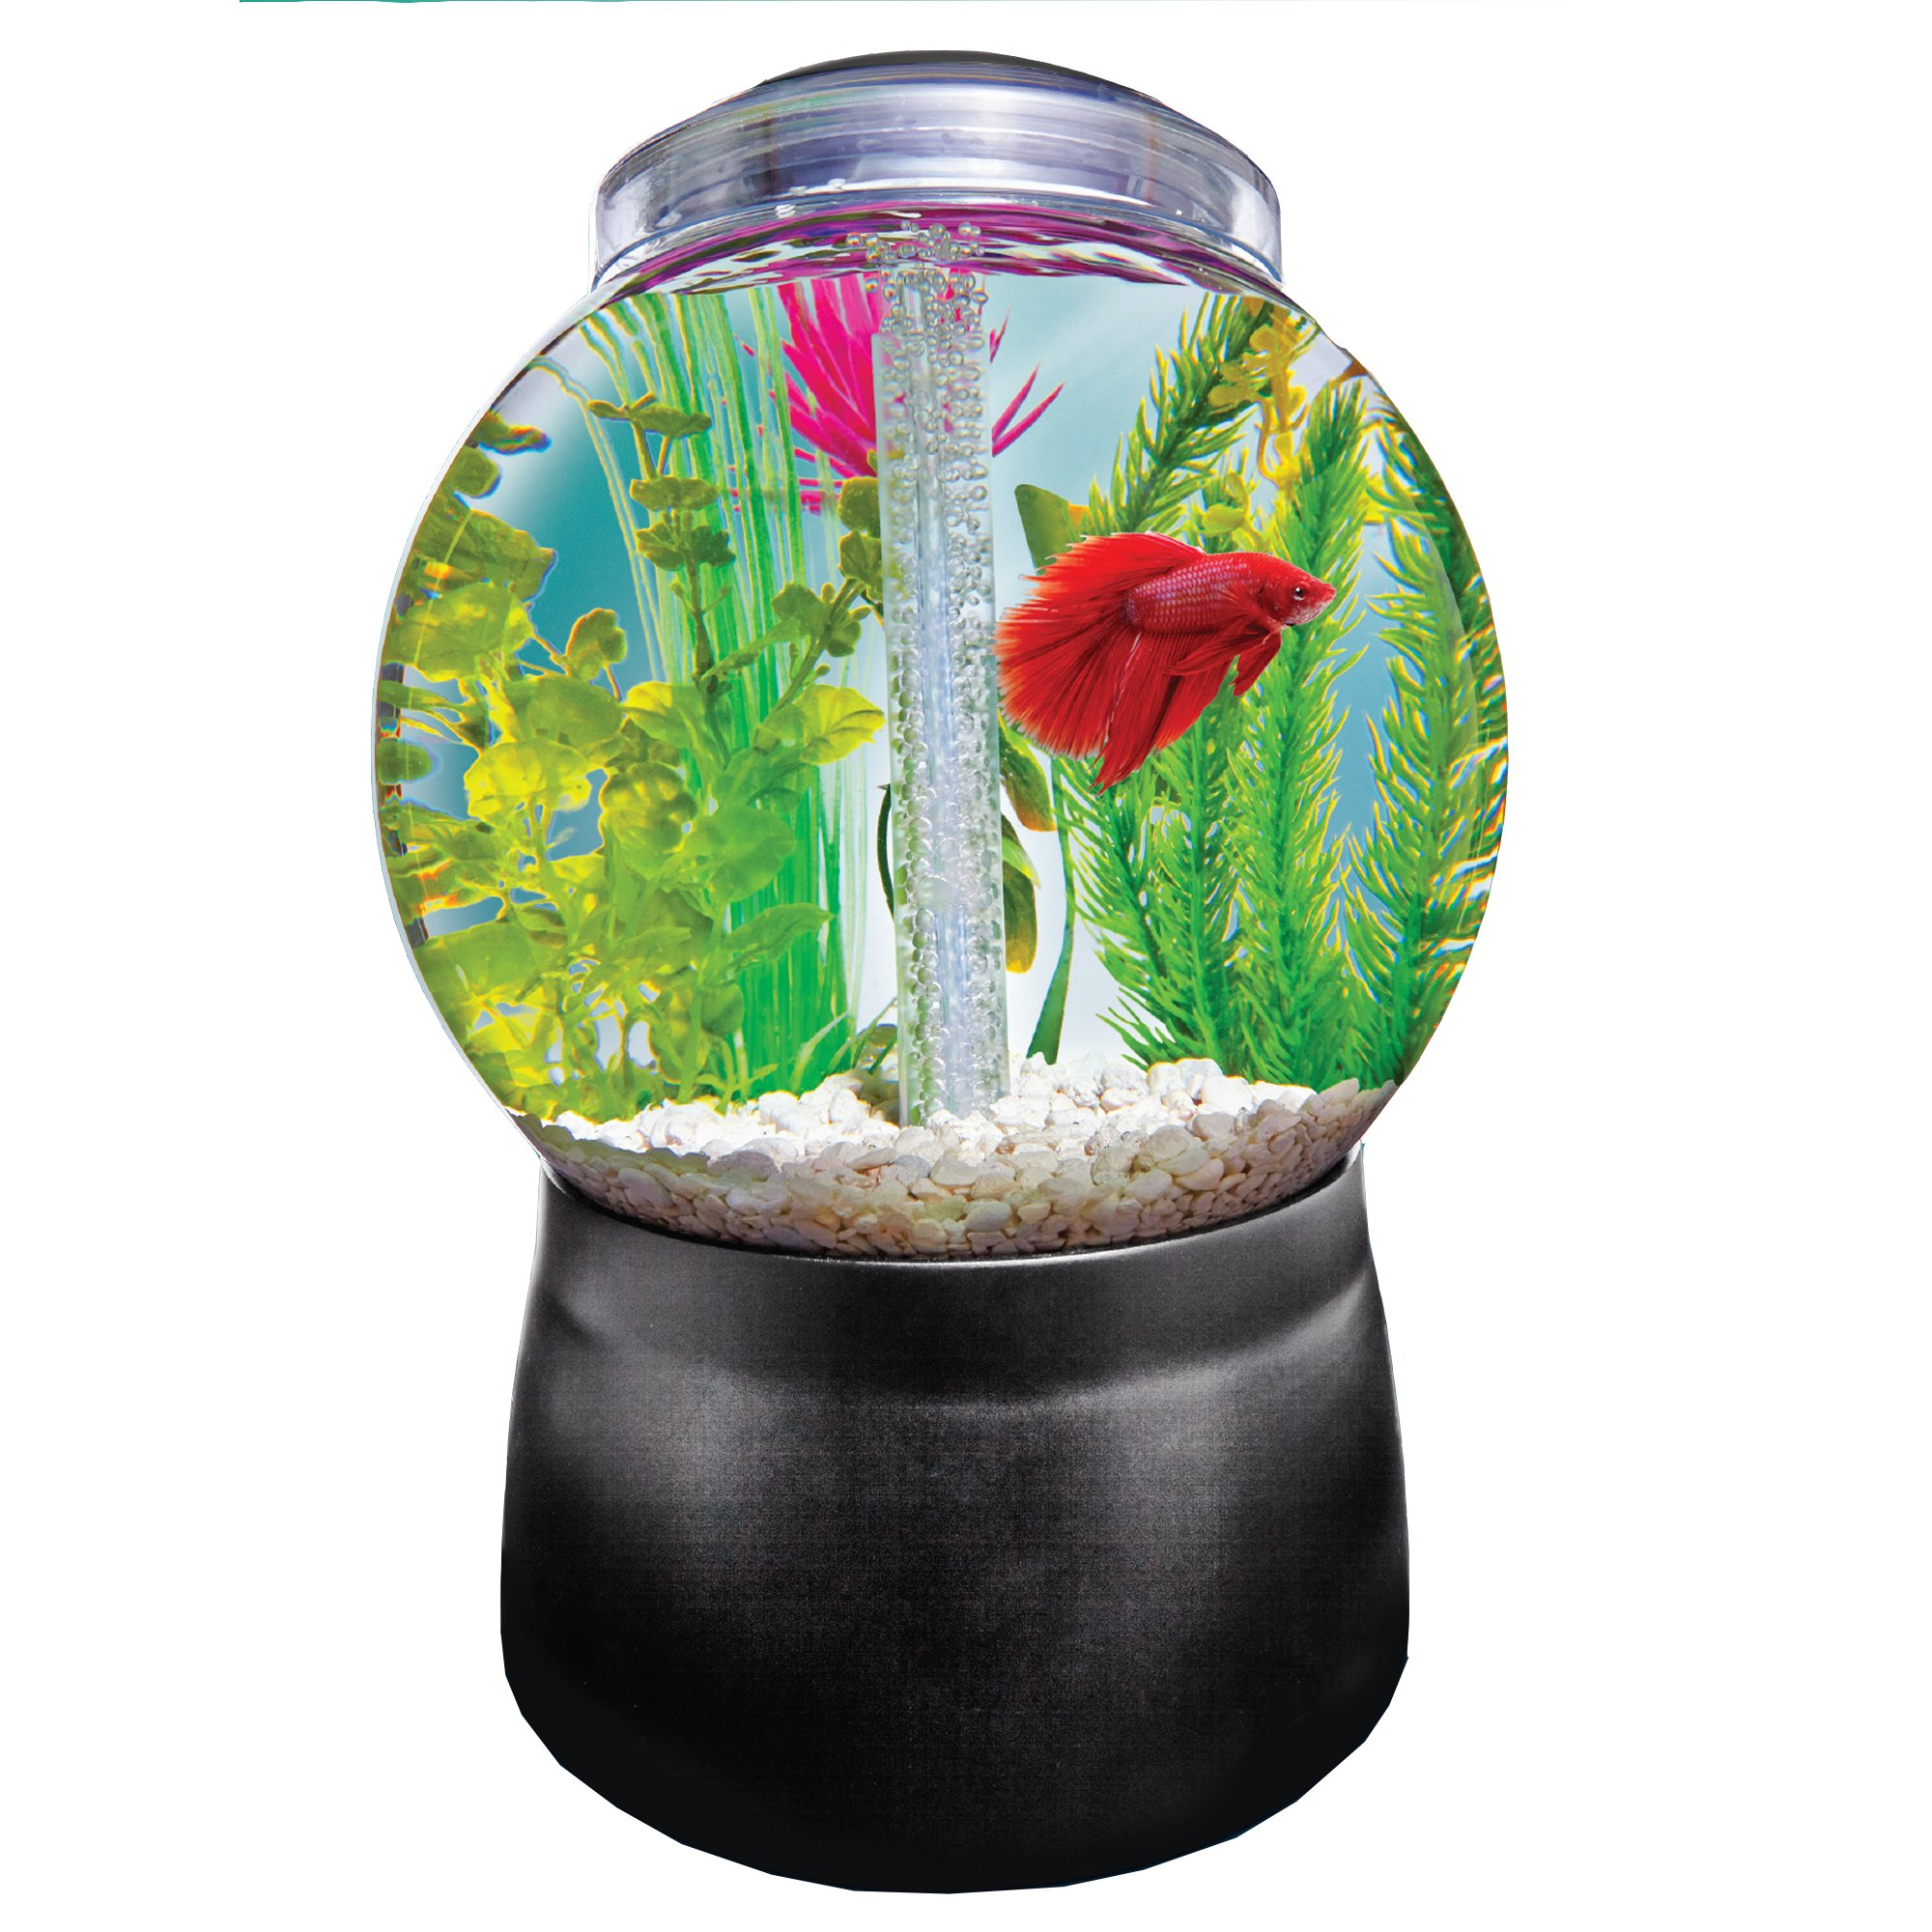 Imagitarium gumball freshwater aquarium petco for Gumball fish tank